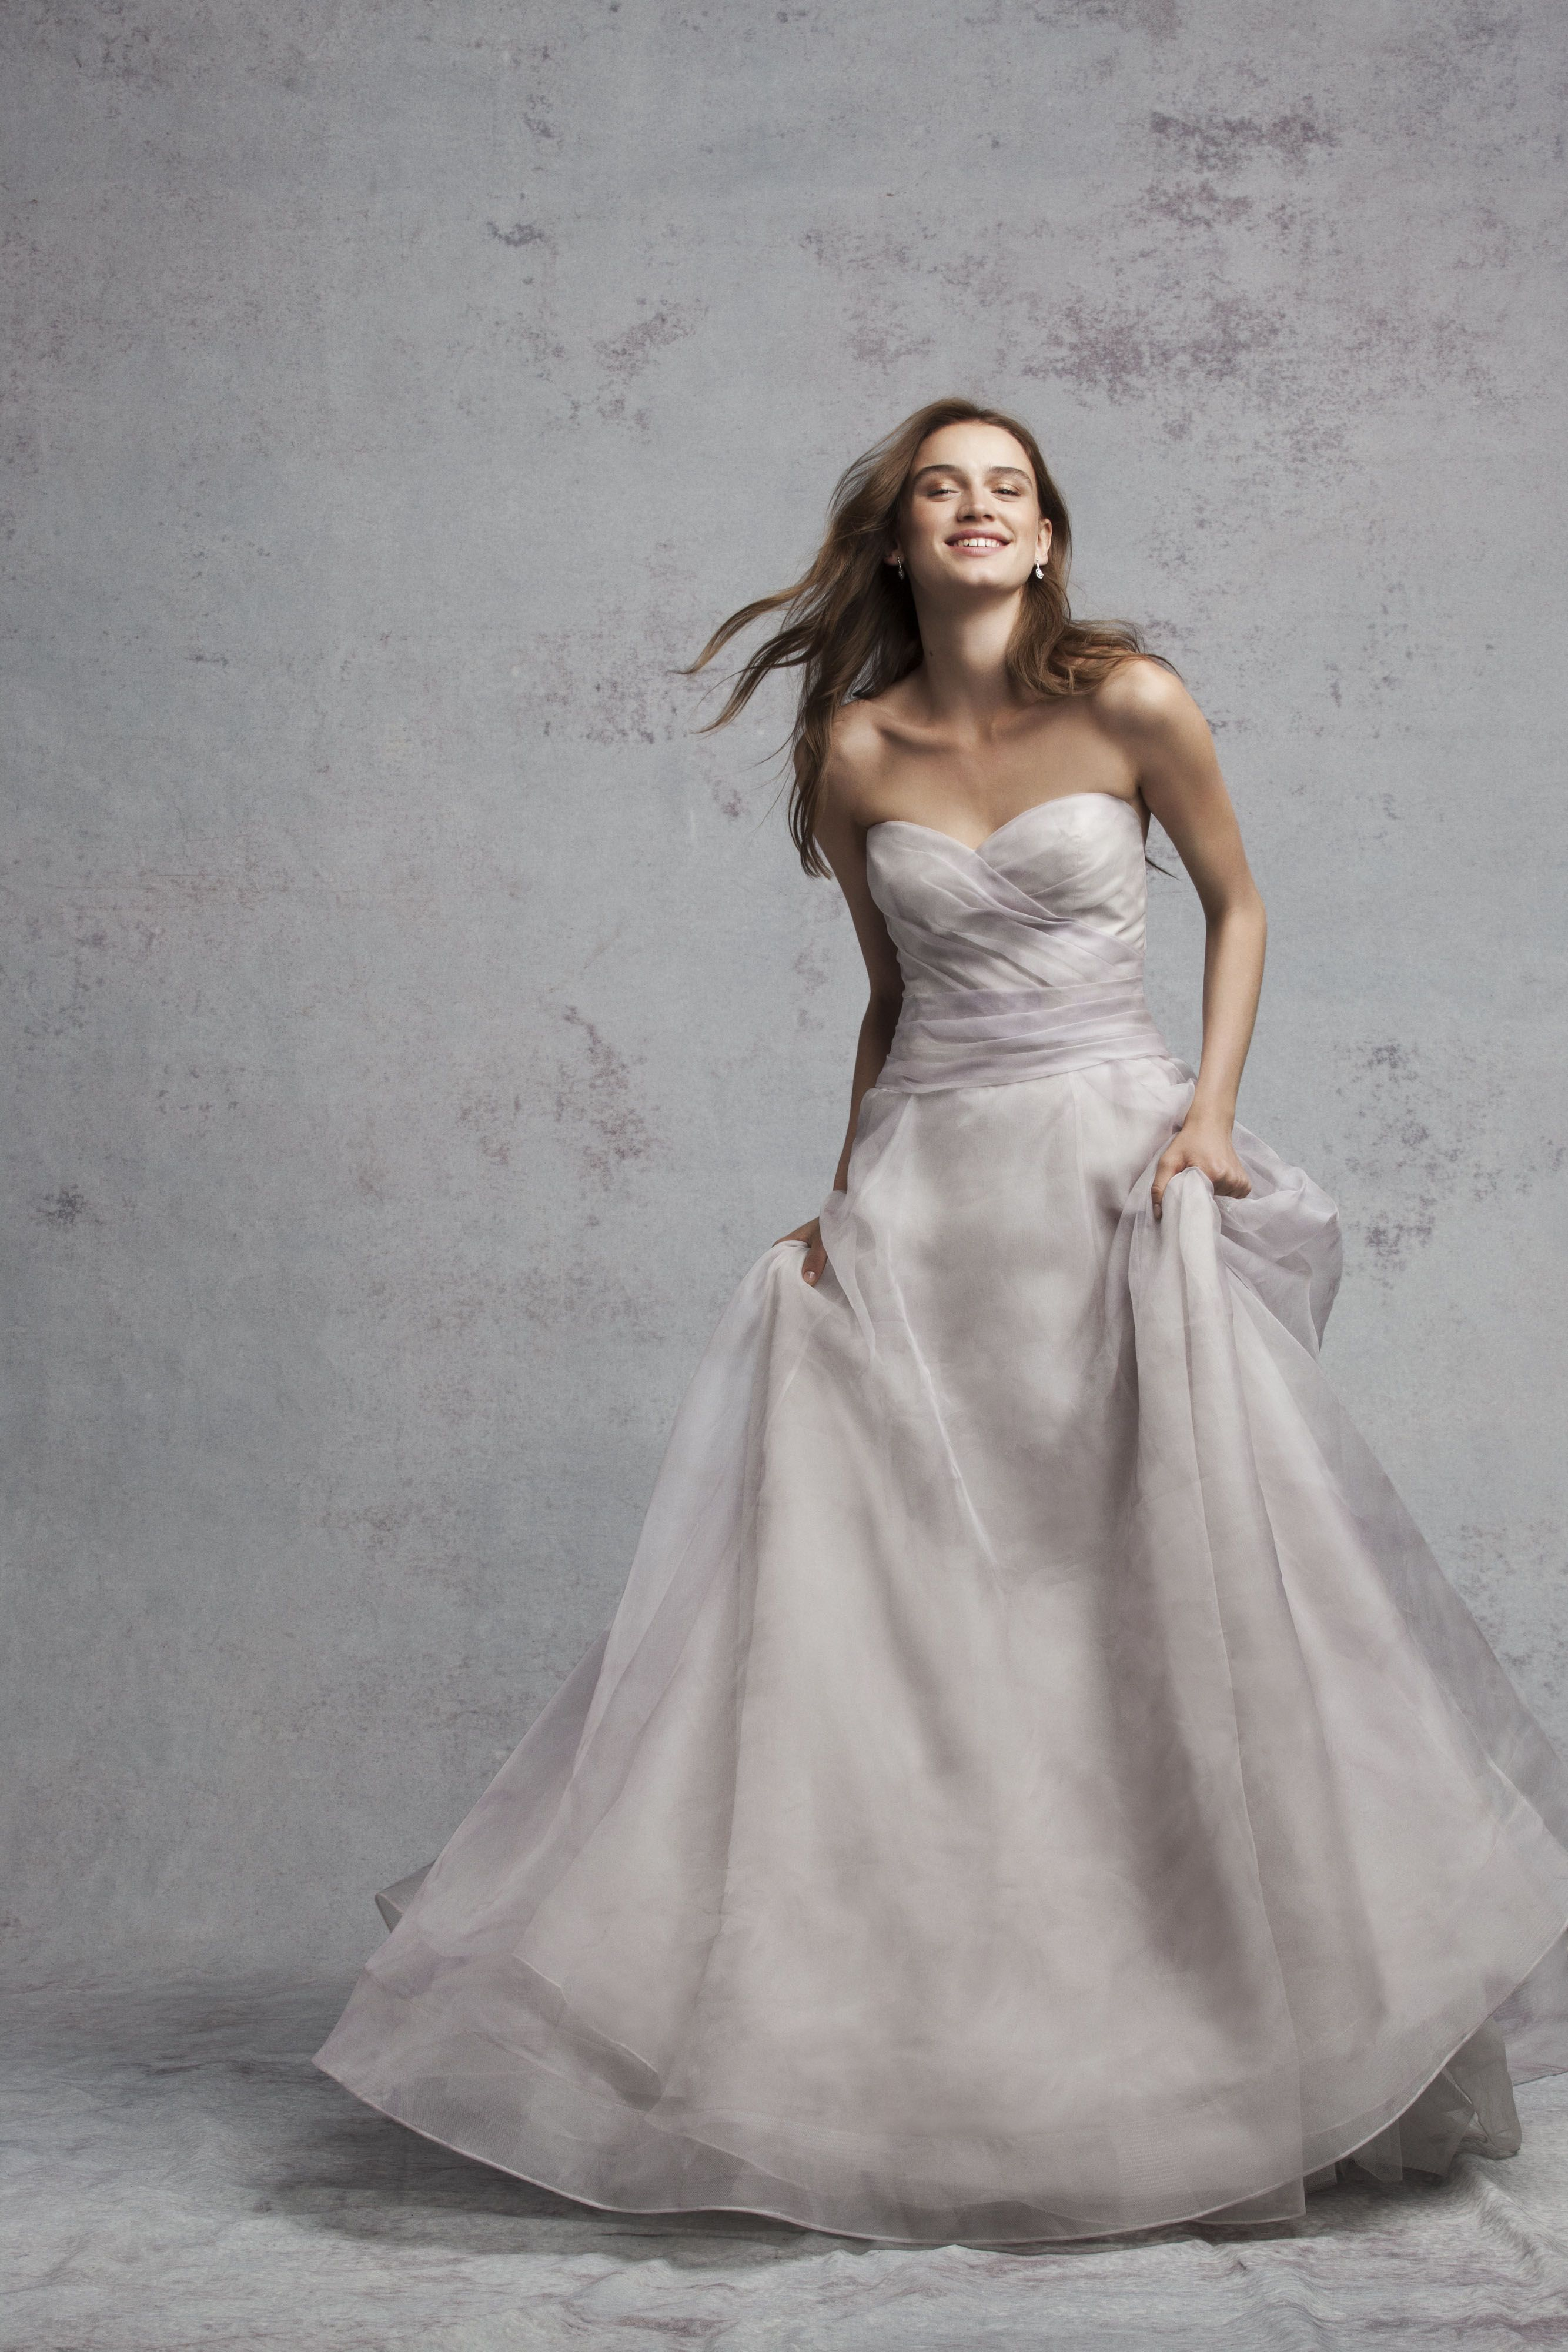 Bliss 16121 lelite boston 14 newbury st 2nd flr 617424 bl to try on these samples and more visit the nordstrom brea wedding suite book your appointment today ombrellifo Images